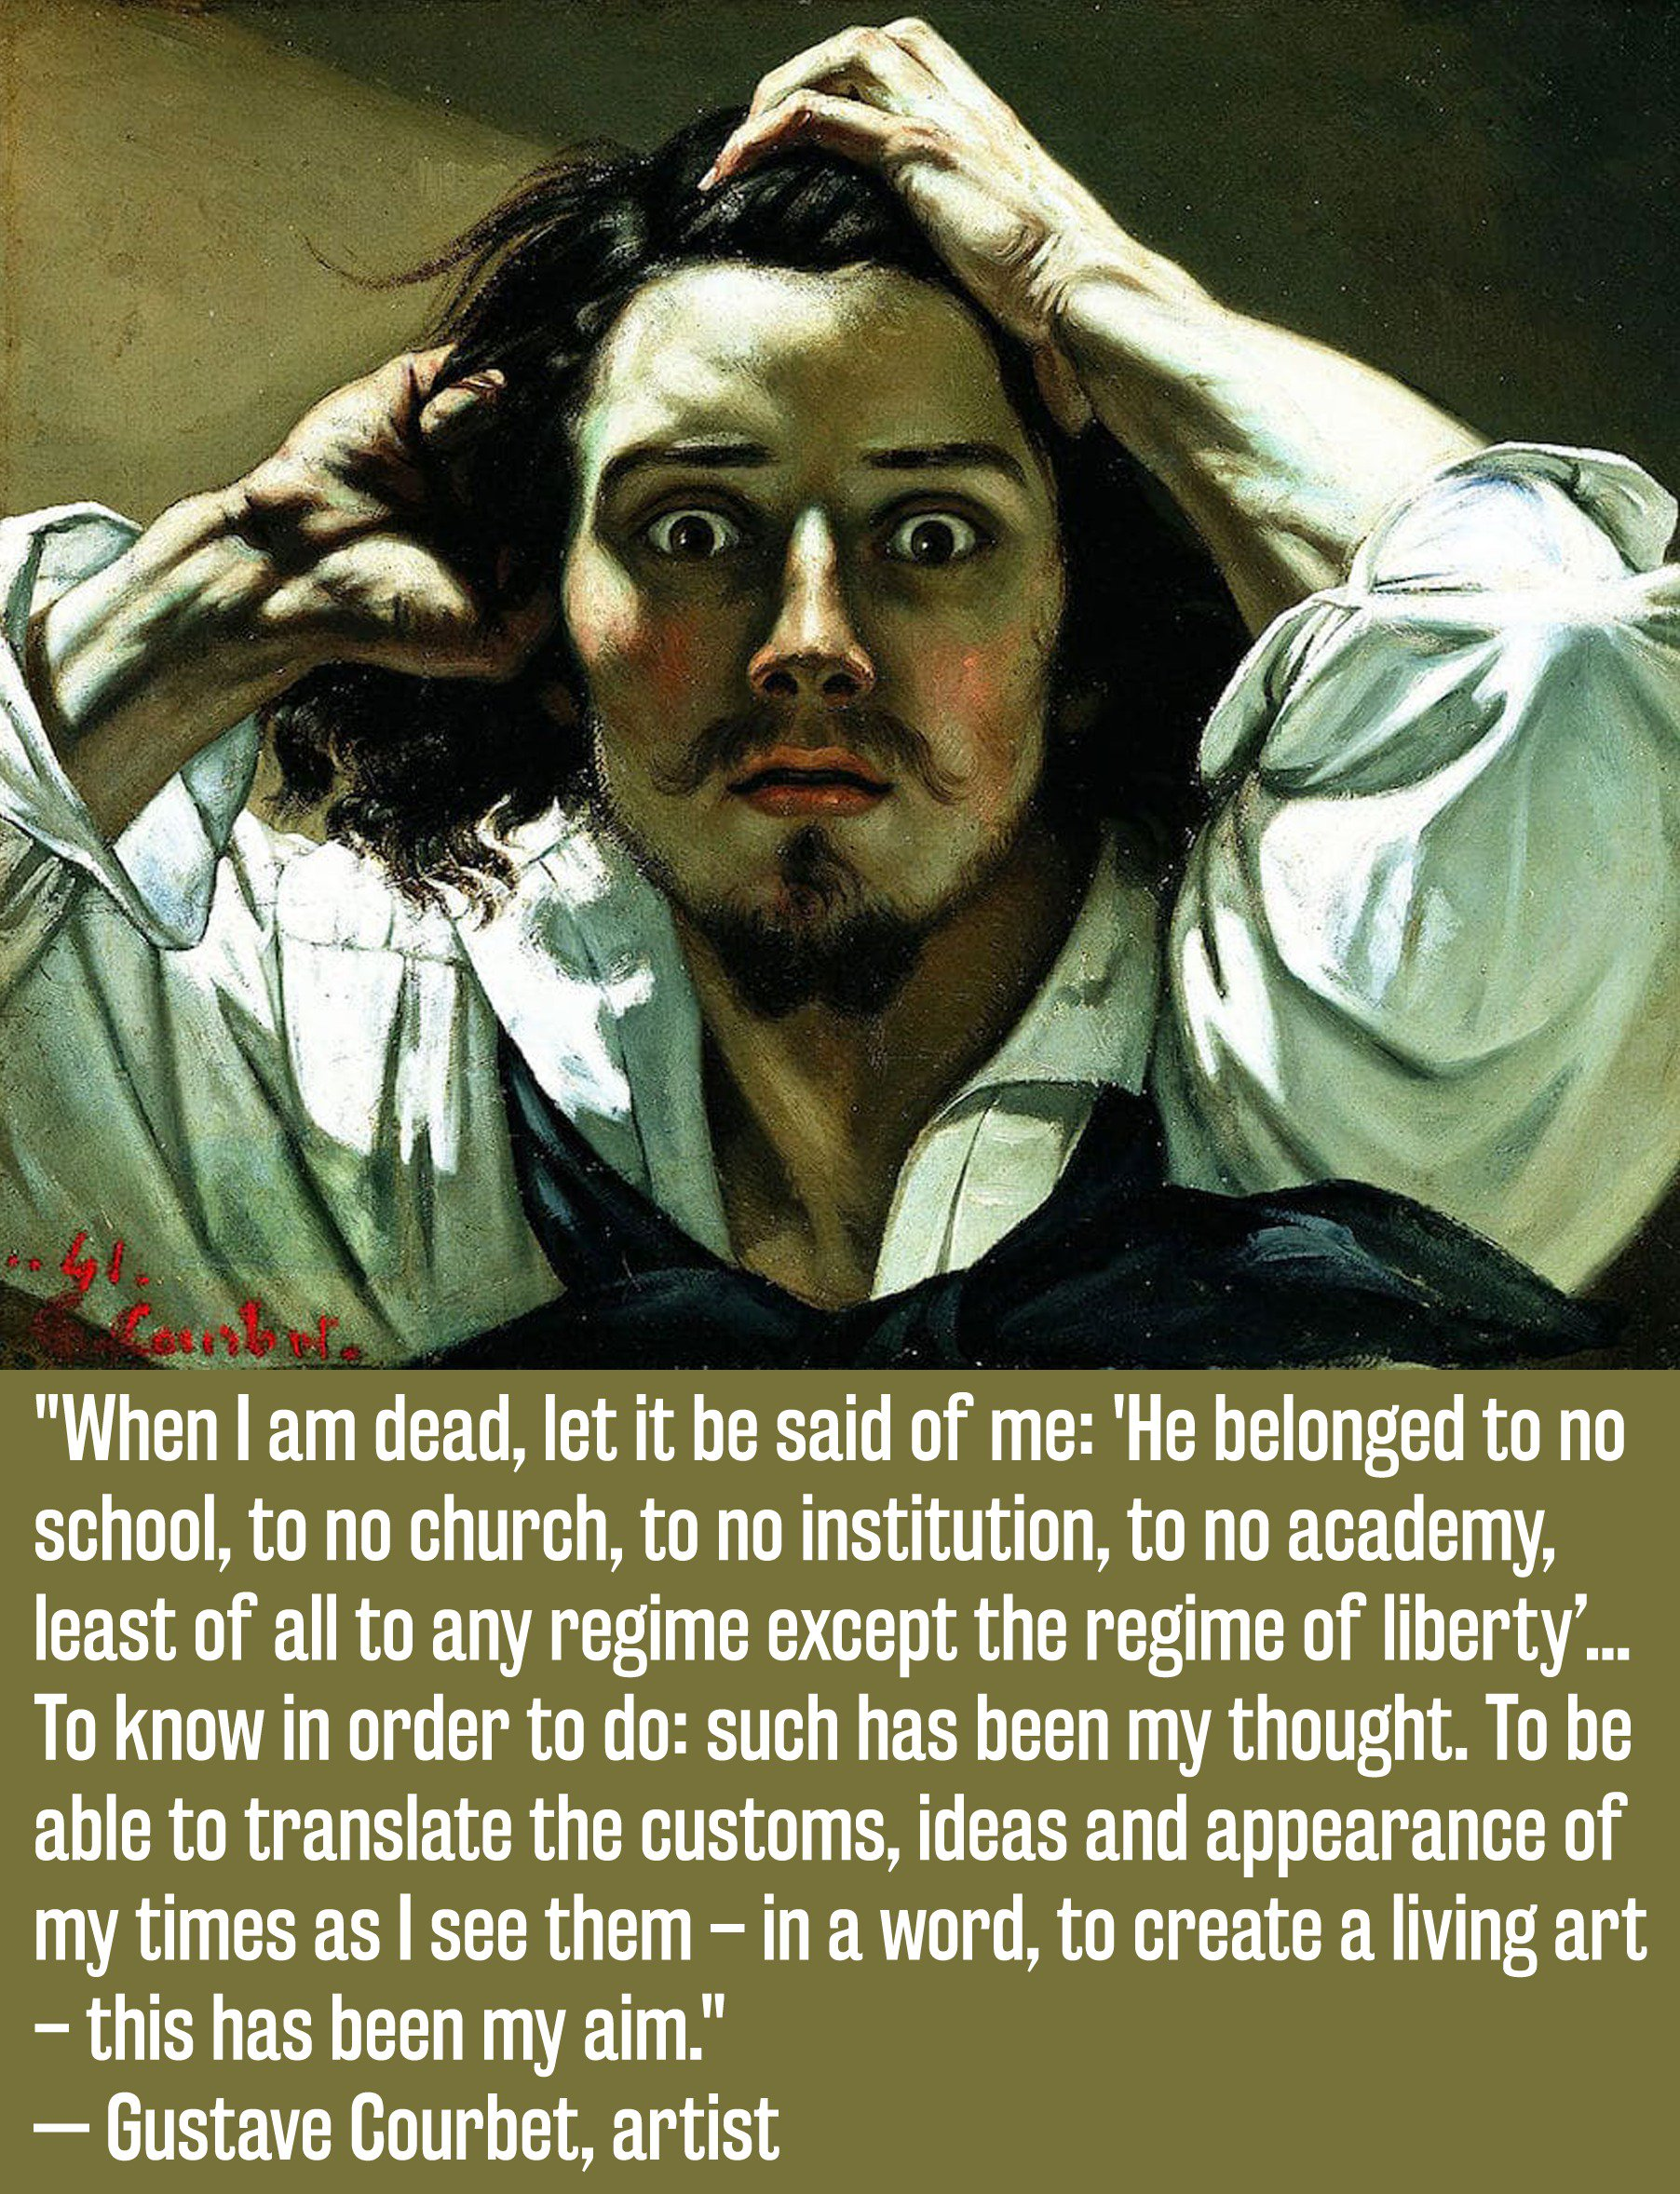 When I am dead, let it be said of me: He belonged to no school, to no church, to no institution, to no academy, least of all to any regime except the regime of liberty…To know in order to do: such has been my thought. To be able to translate the customs, ideas, and appearance — Courbet [1804×2356]